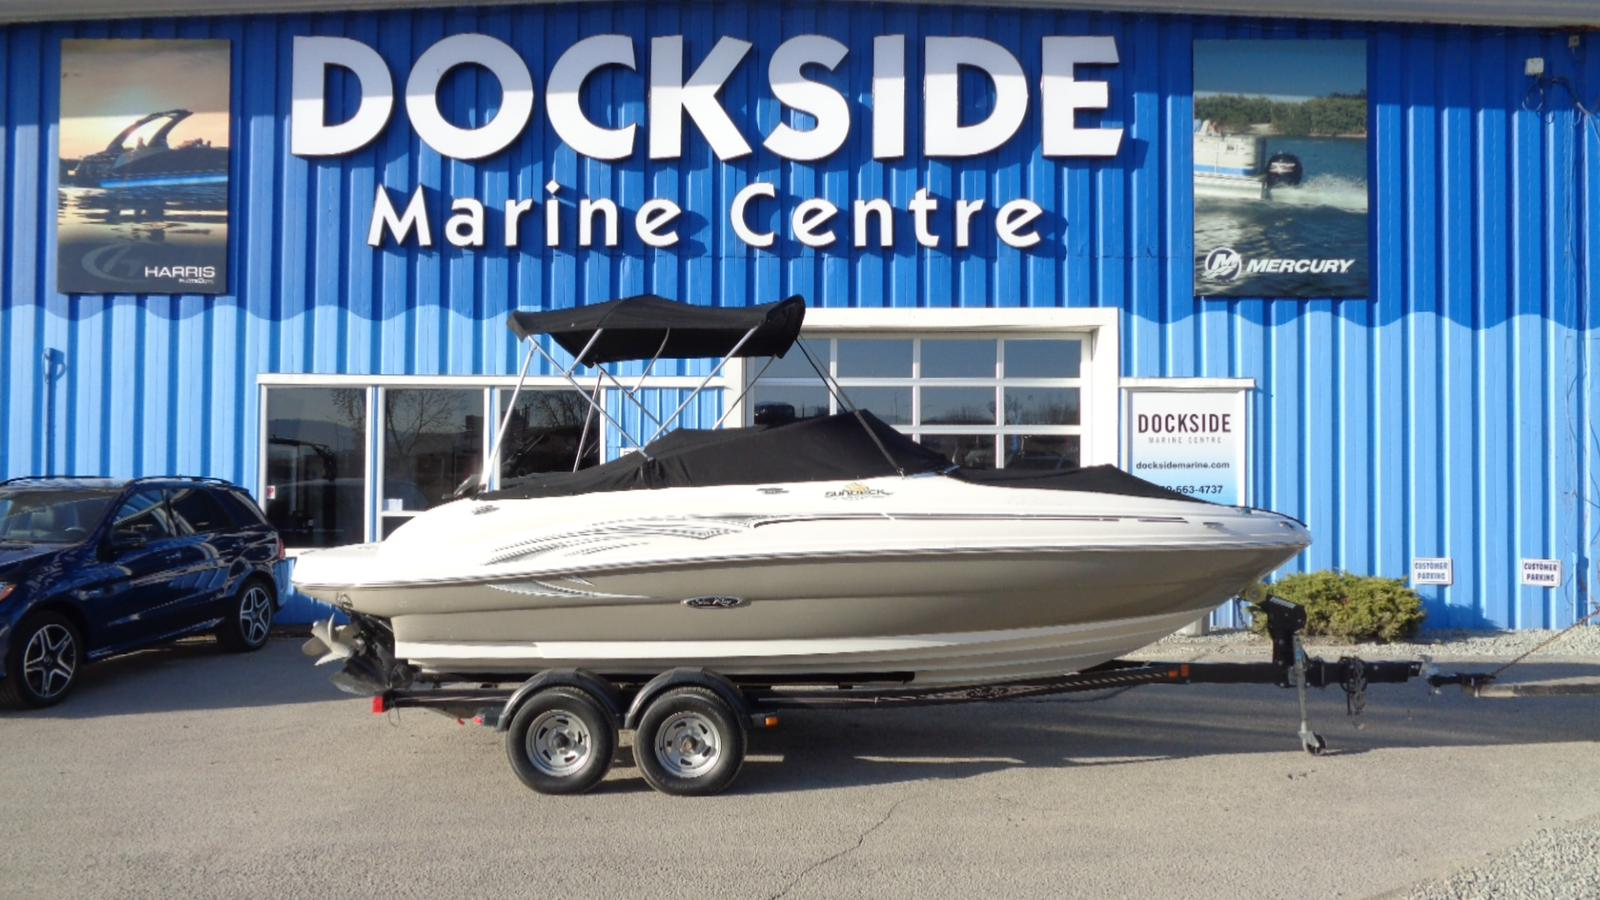 For Sale: 2005 Sea Ray 200 Sundeck 21ft<br/>Dockside Marine Centre, LTD.